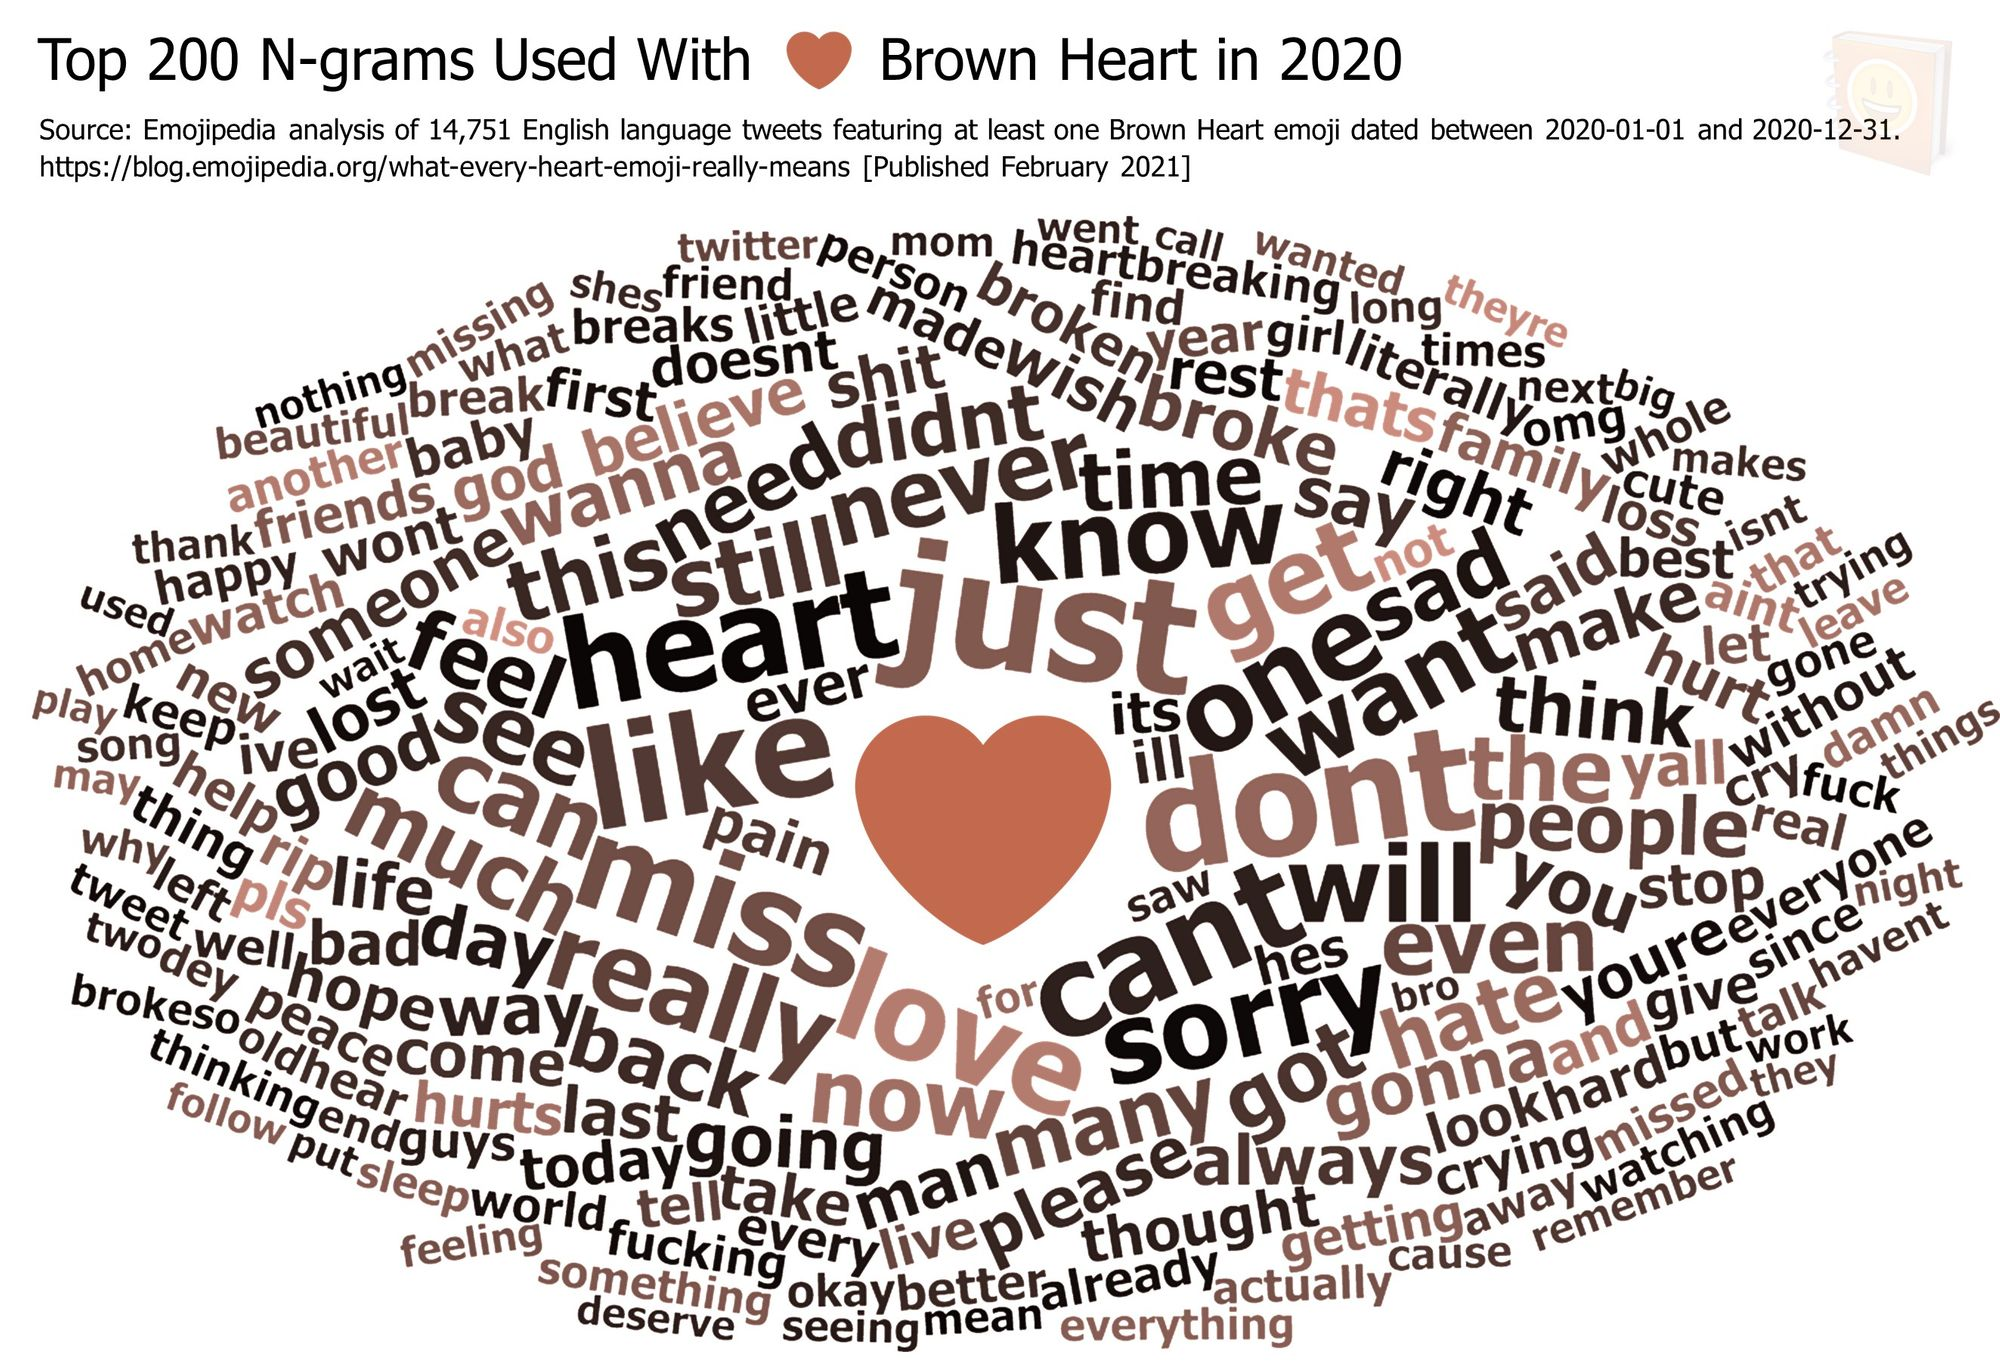 Emojipedia-Blog---What-Every-Heart-Emoji-Really-Means---Top-200-N-grams-Used-With-------Brown-Heart-in-2020